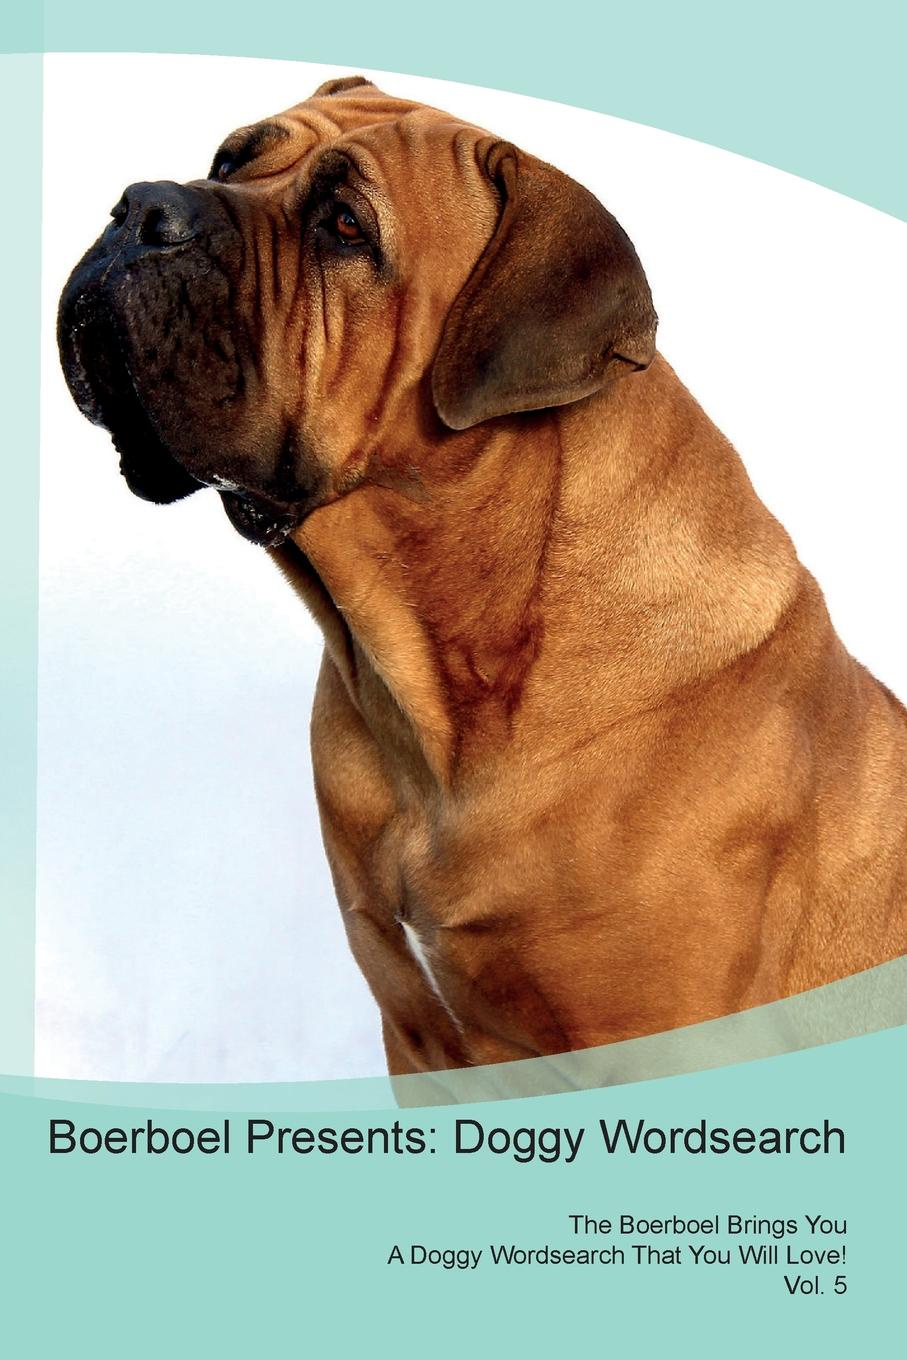 Фото - Doggy Puzzles Boerboel Presents. Doggy Wordsearch The Boerboel Brings You A Doggy Wordsearch That You Will Love! Vol. 5 harry holstone boerboel the boerboel dog owner s manual boerboel dog care personality grooming health costs and feeding all included